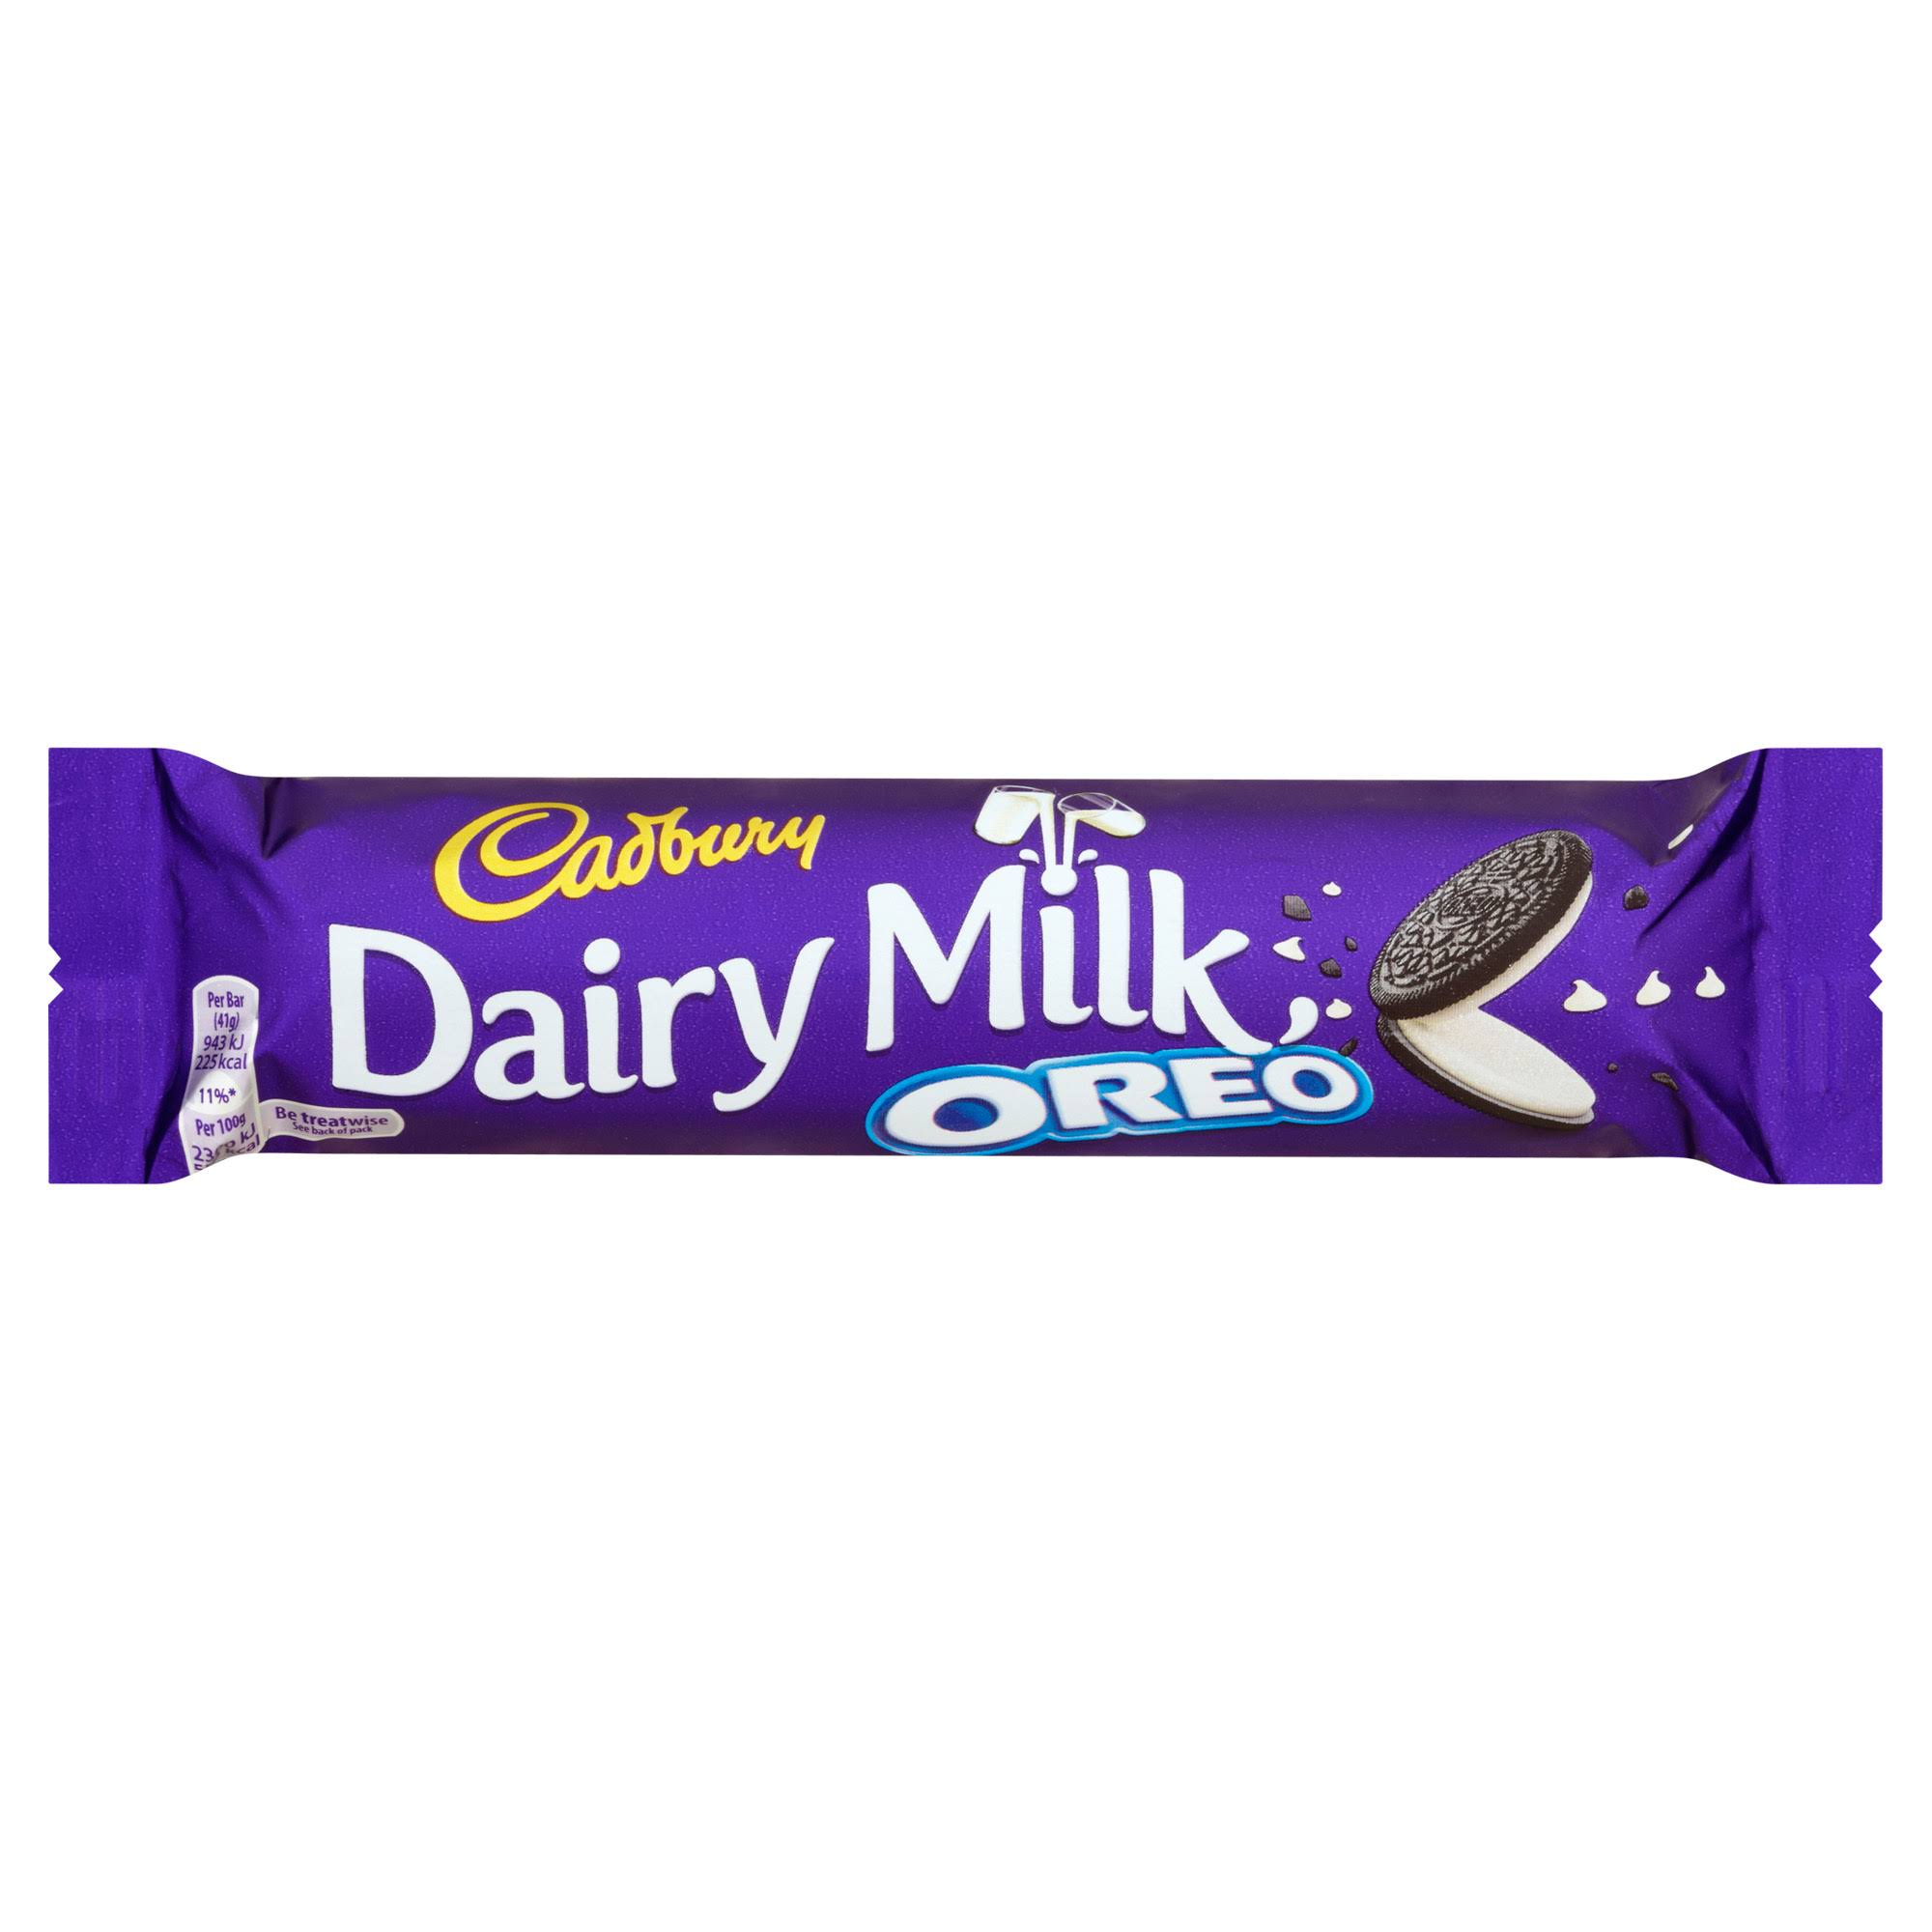 Cadbury Dairy Milk Chocolate Bar - Oreo, 41g